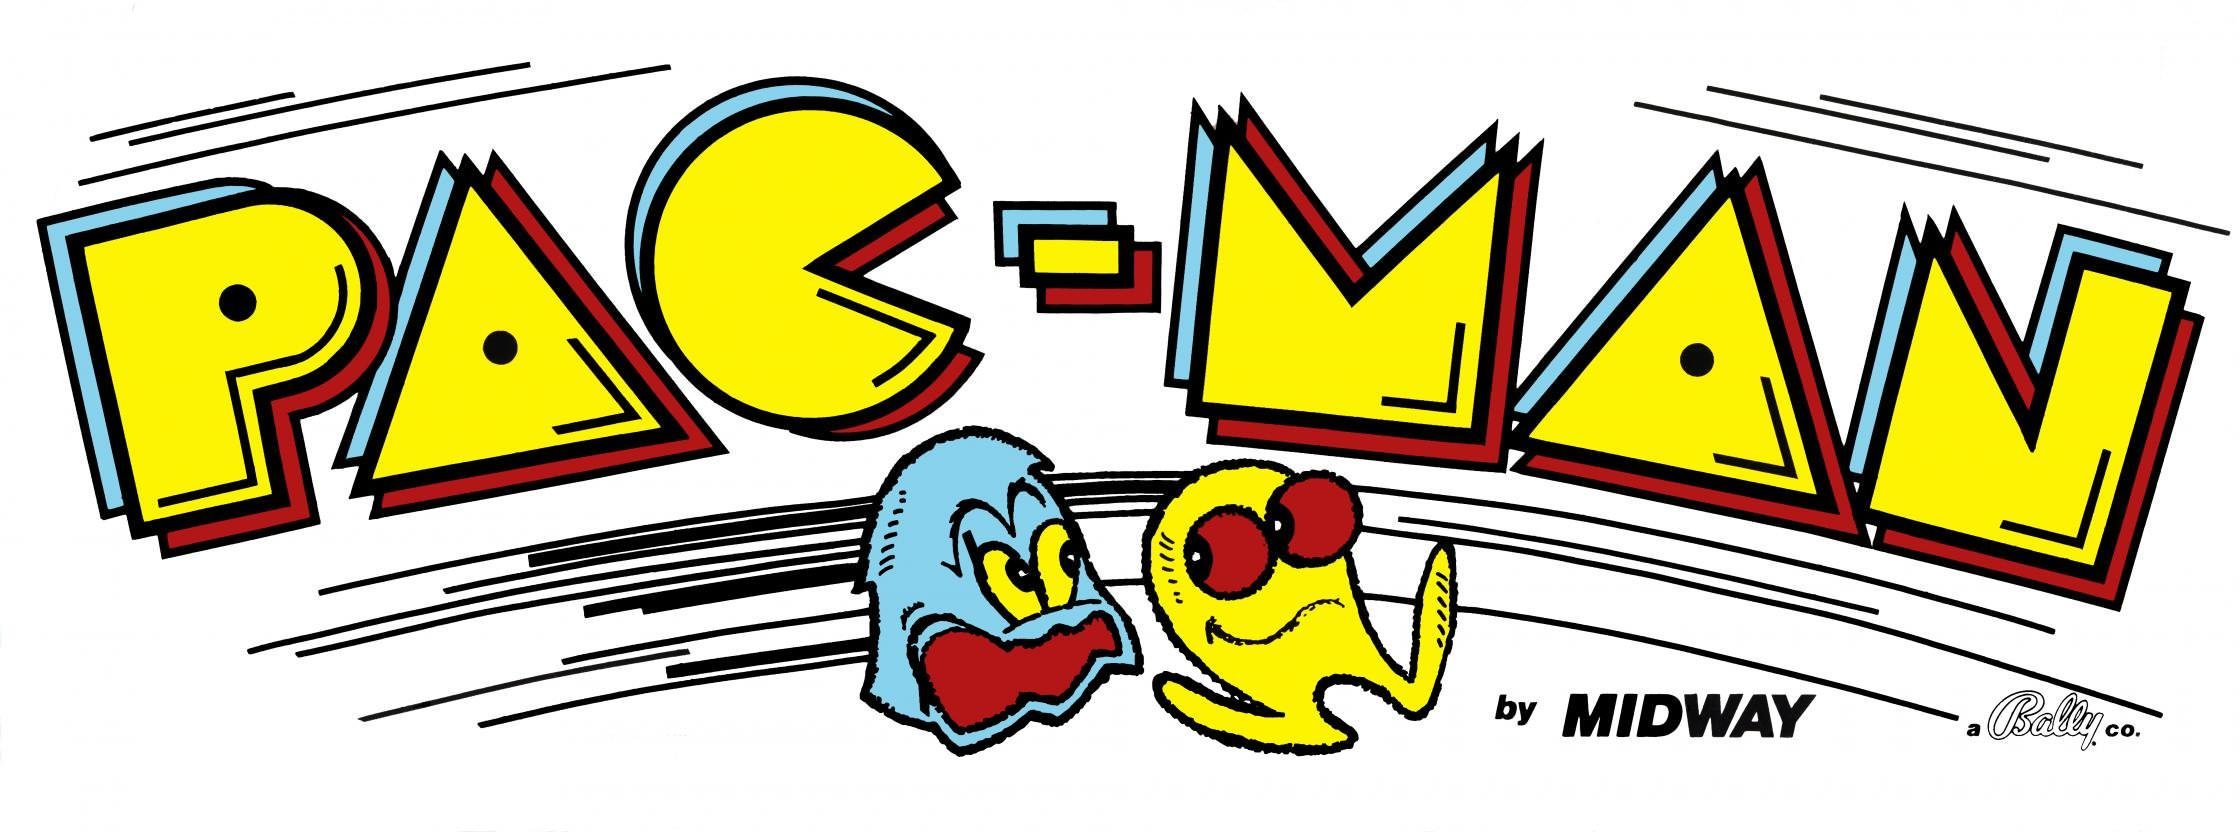 2240x832 Dual monitor Pac-Man wallpapers, HD backgrounds